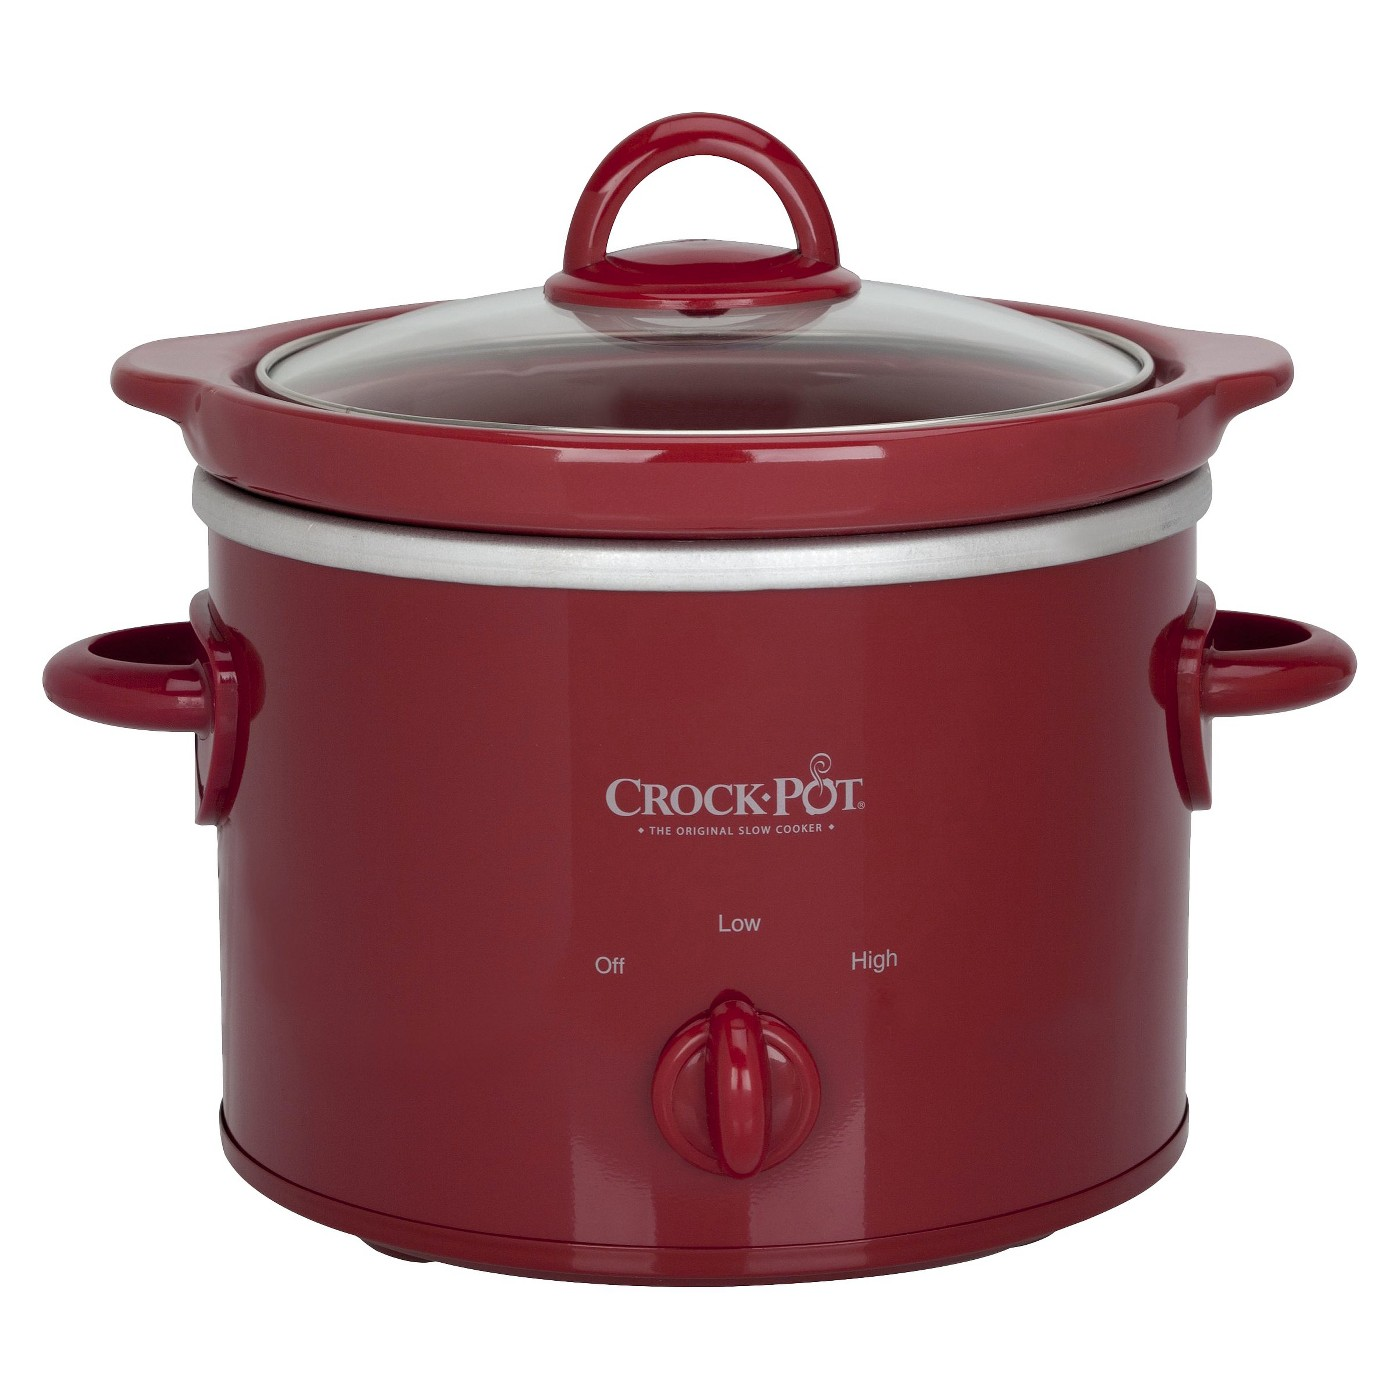 Crock-Pot® 2qt Slow Cooker - SCR200 - image 1 of 1